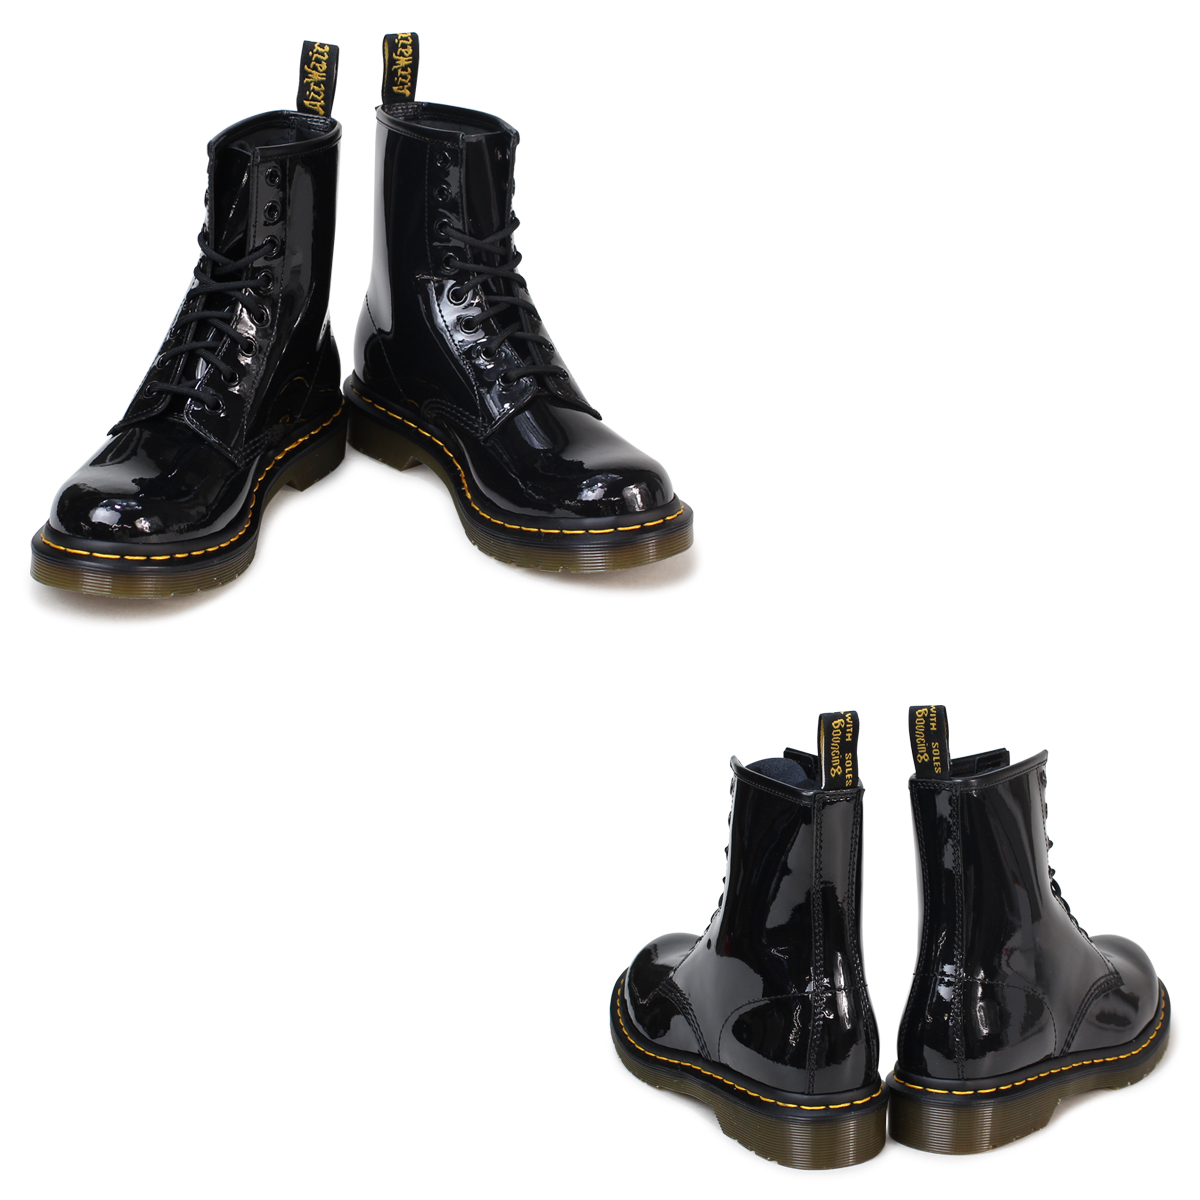 «Reservation products» «10 / 22 around stock» Dr. Martens Dr.Martens 1460 WOMENS 8 hole boots R11821011 MATERIAL UPDATES patent leather Womens mens 8 EYE BOOTS